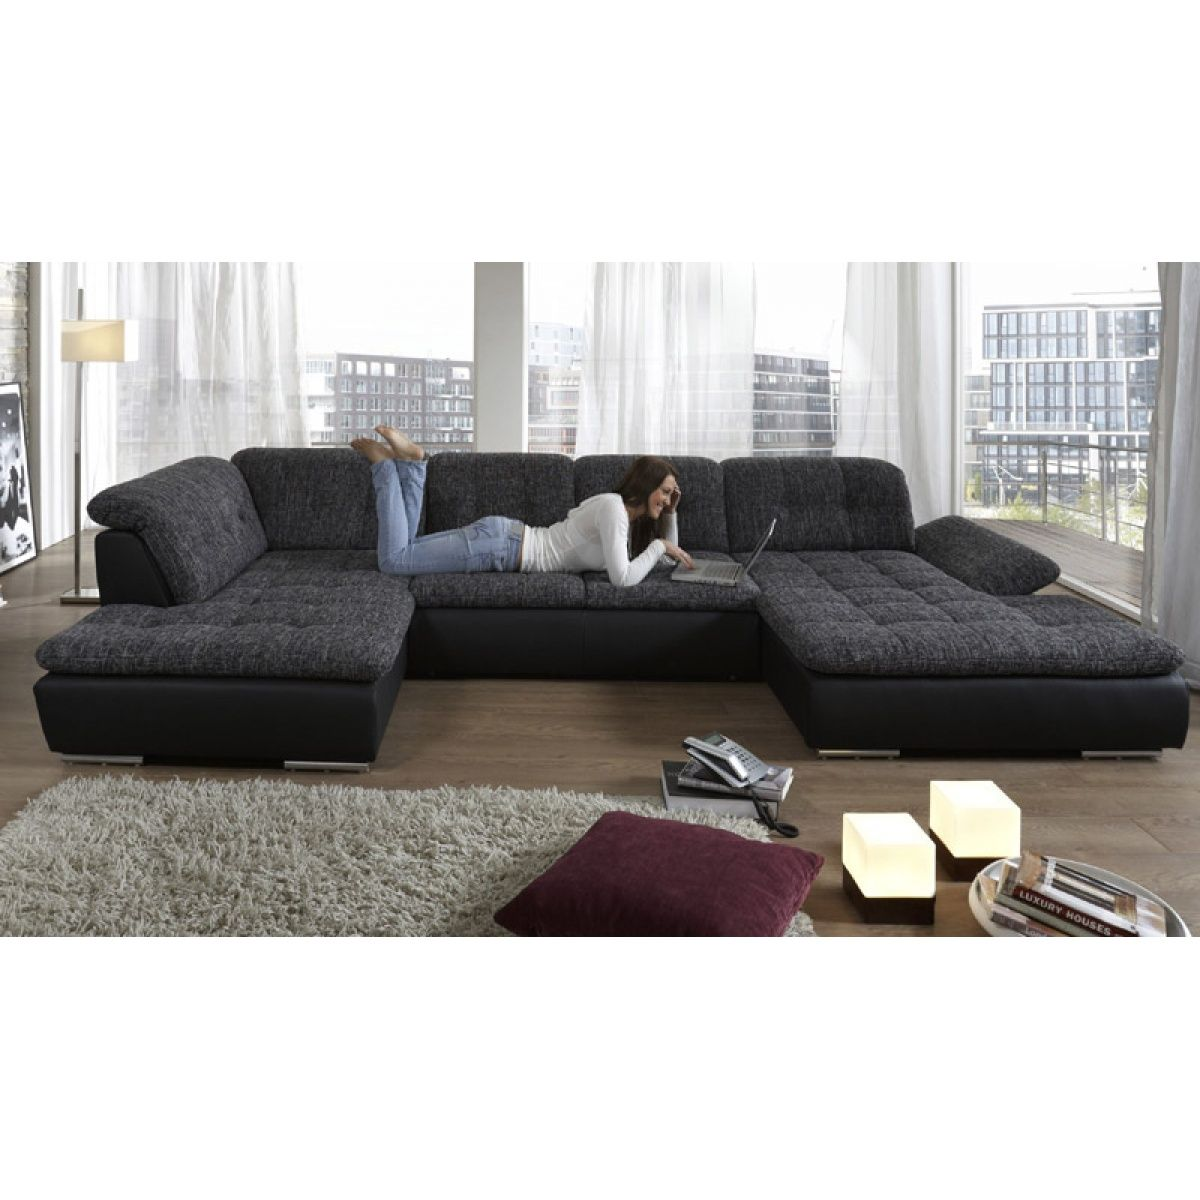 Howell Sofa How To Stop Your Dog Getting On The Wohnlandschaft Linos I Pinterest